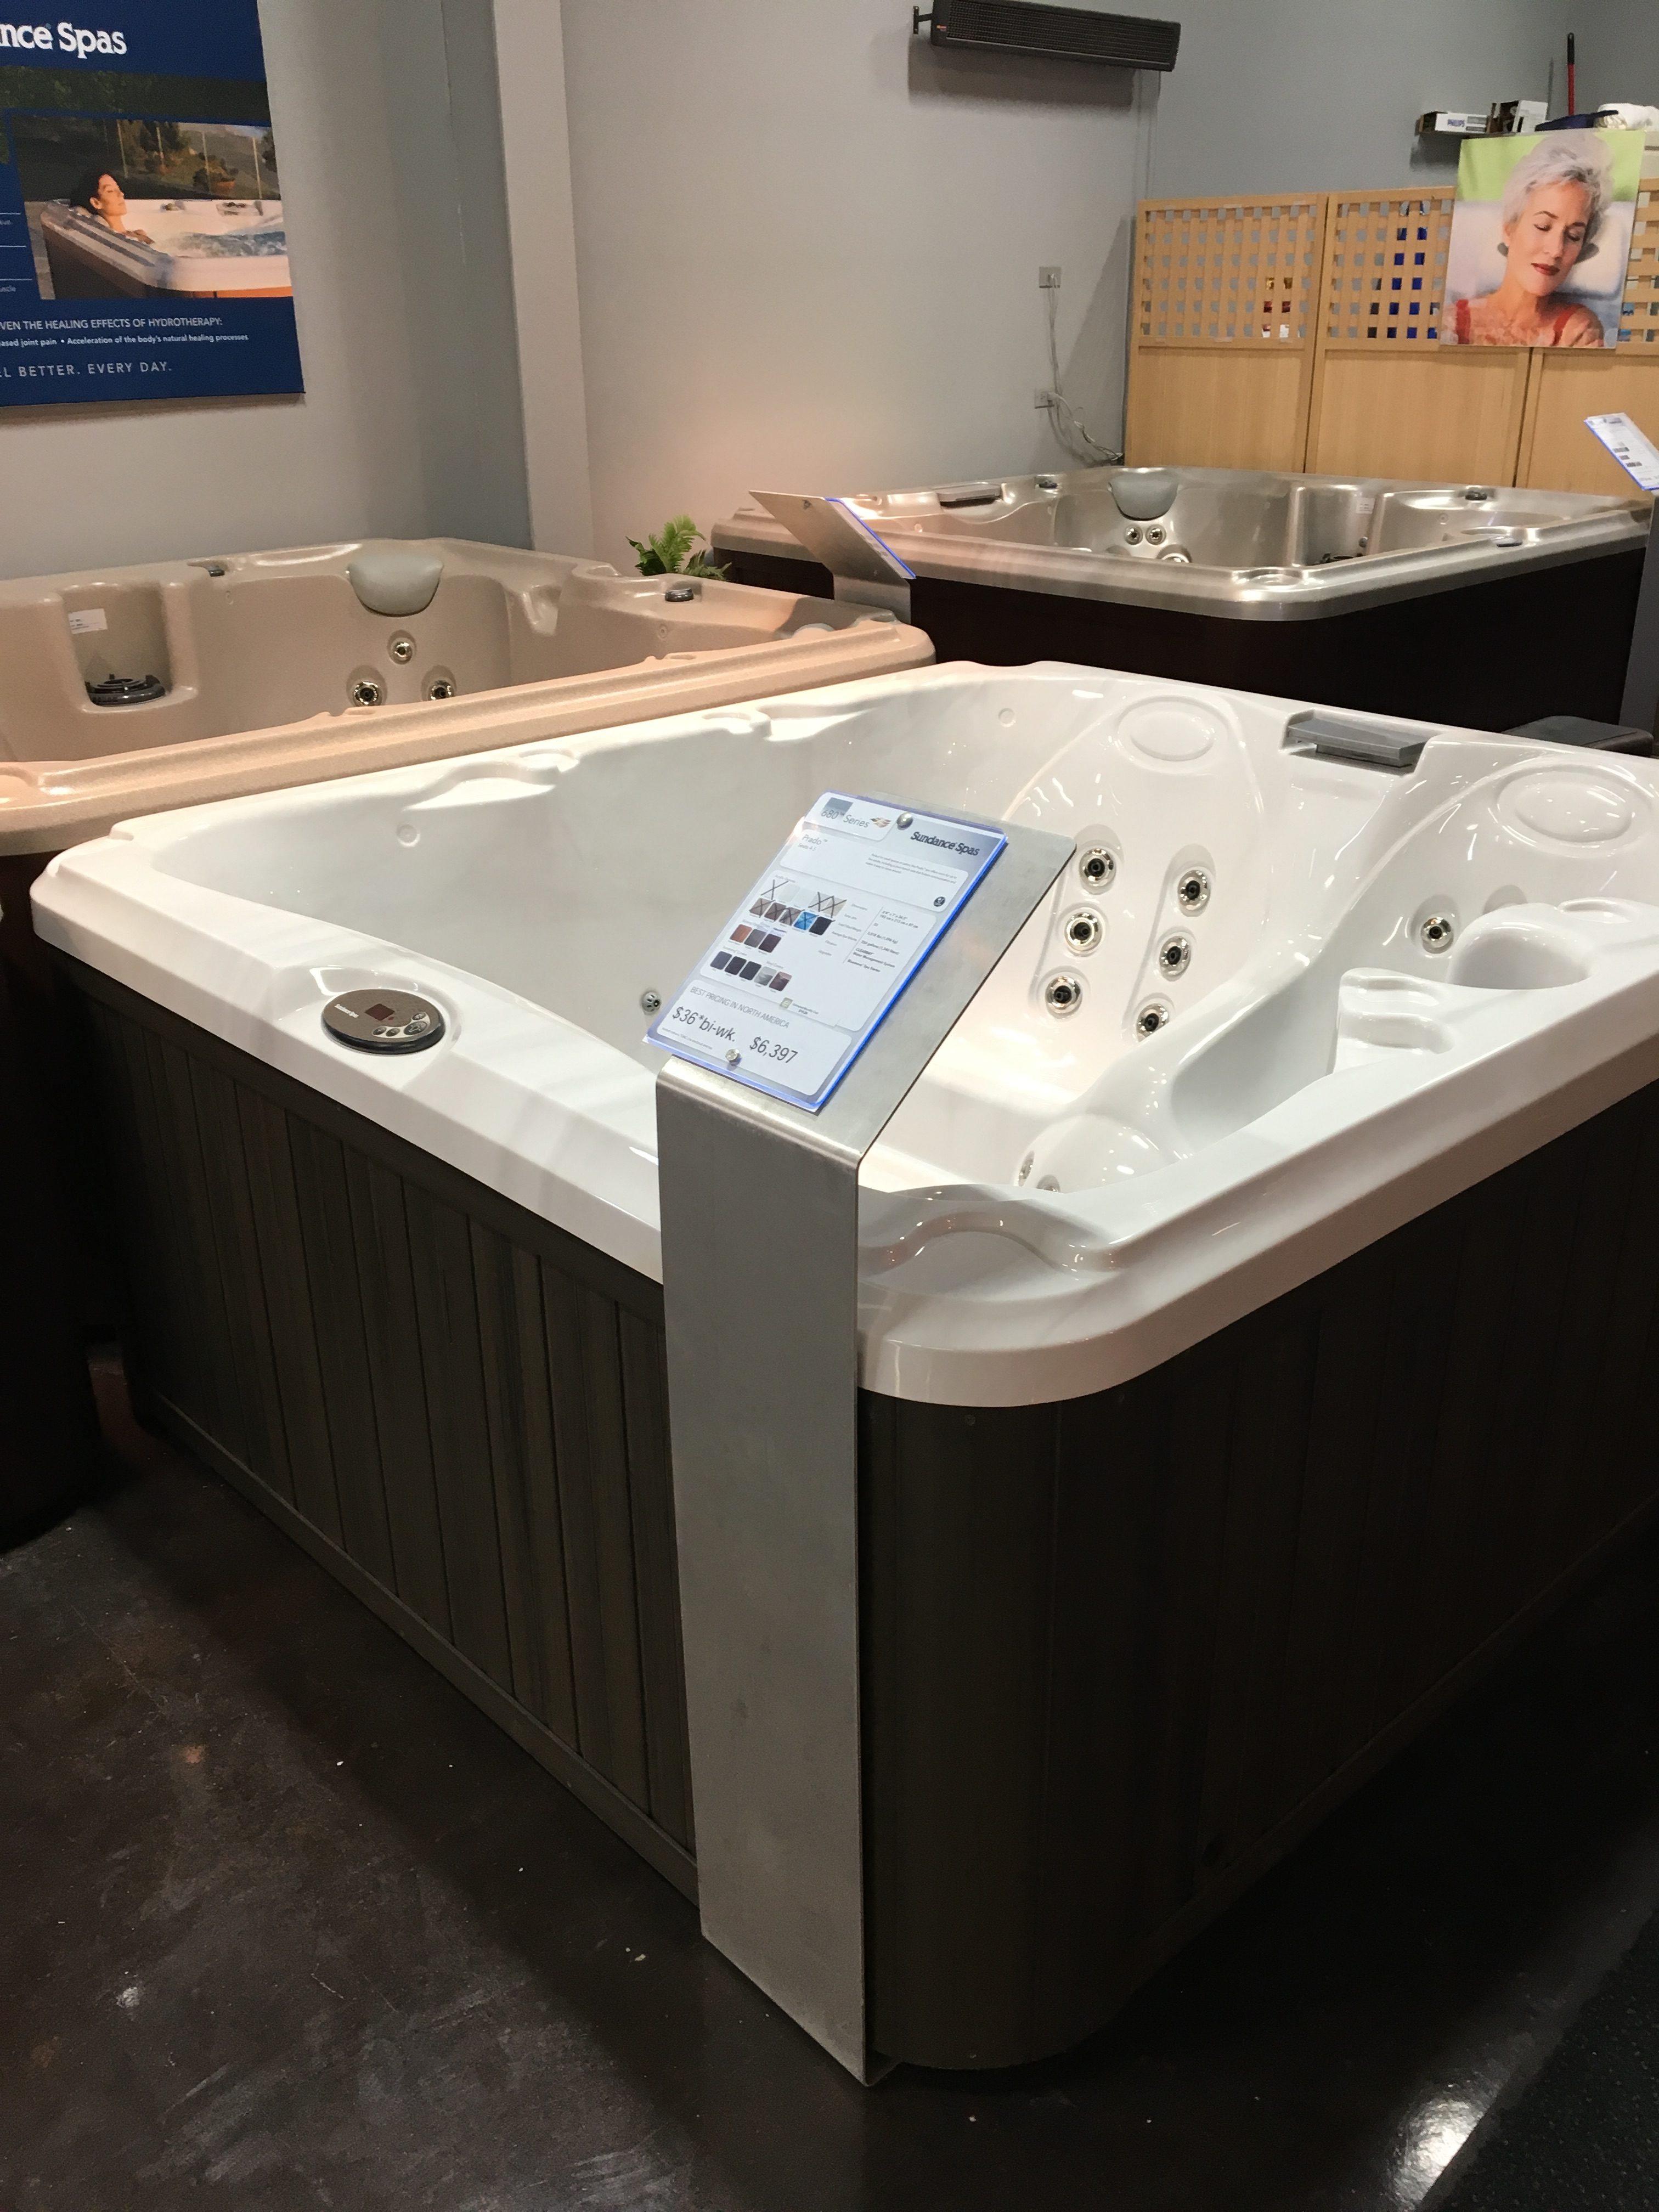 New Hot Tub Models for 2017! Sundance Spas is the industry leader ...